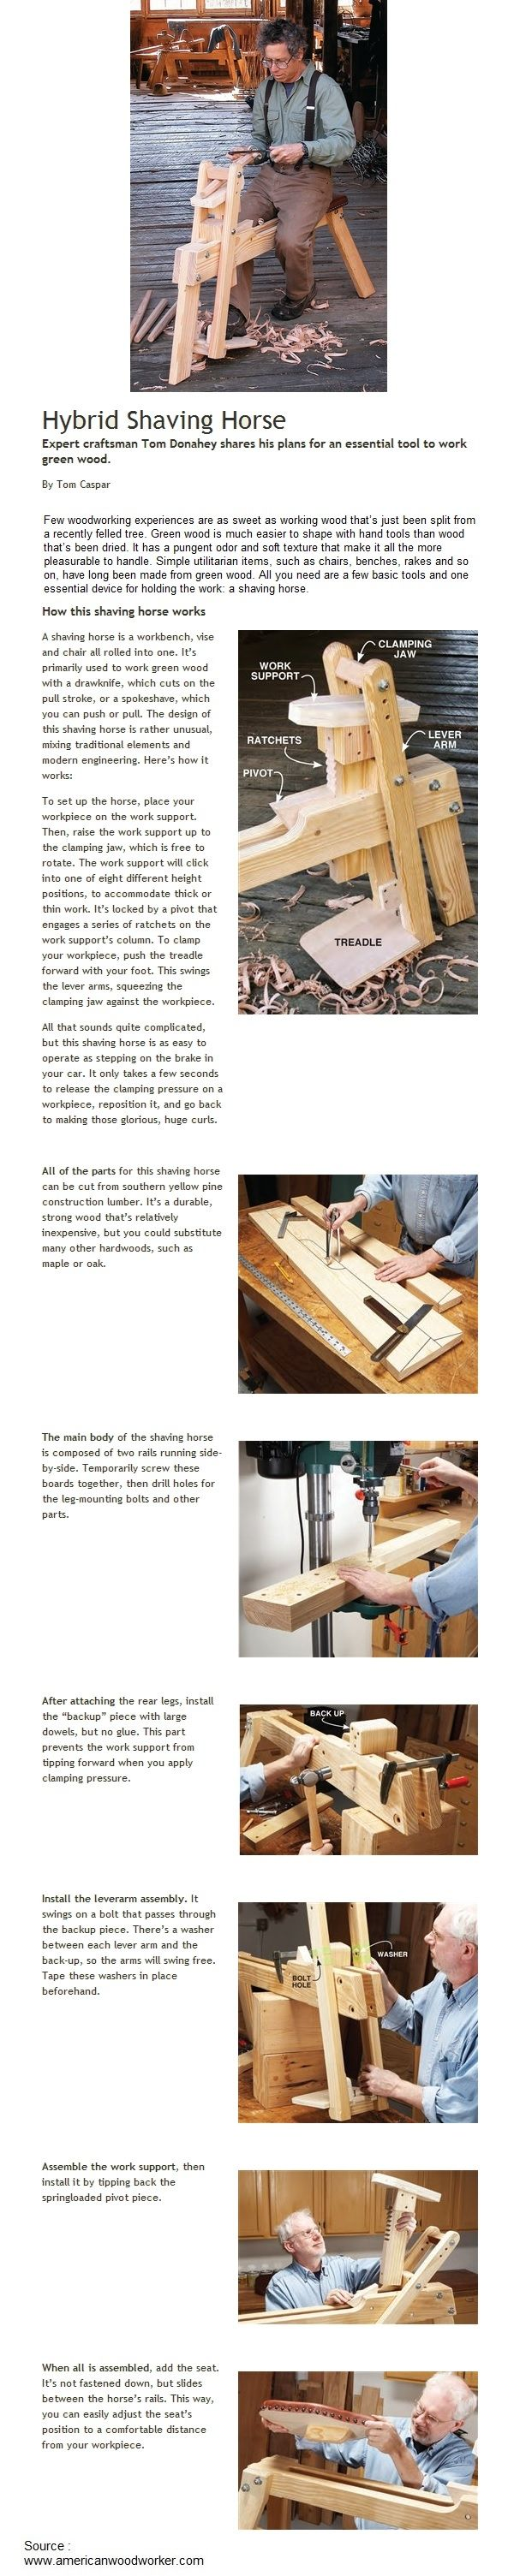 25+ unique Green woodworking ideas on Pinterest | Useful ...